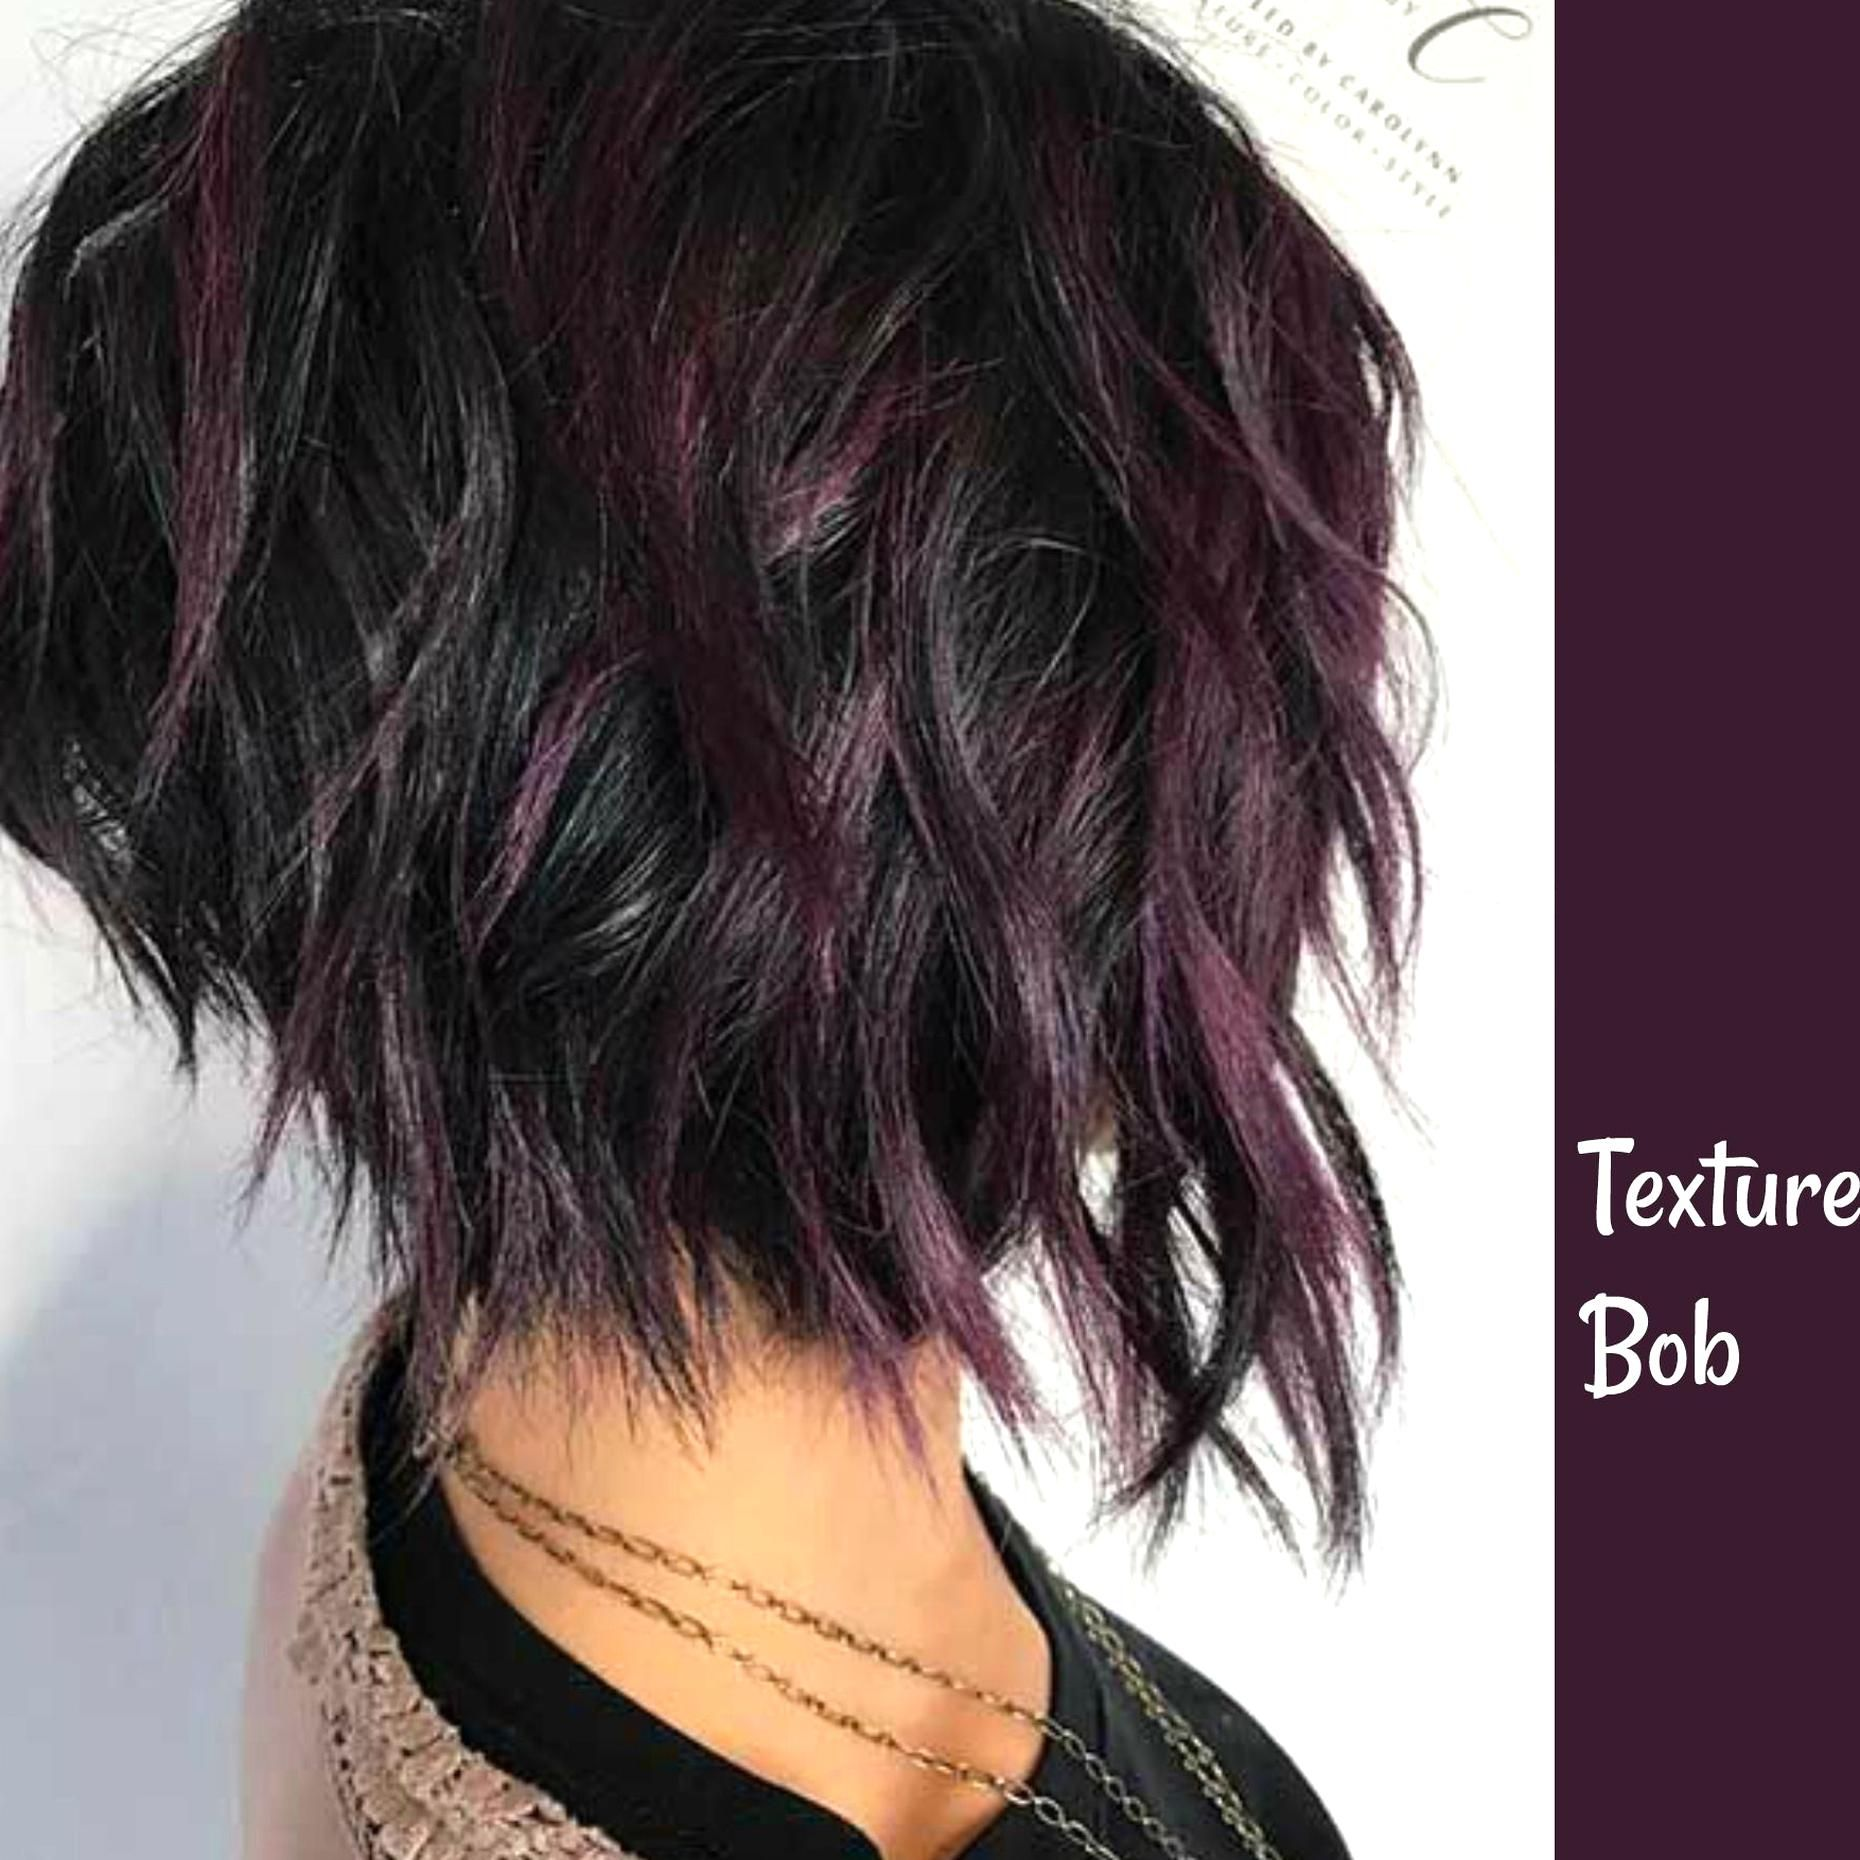 Textured Bob With Purple Highlights On Dark Hair In 2020 Short Messy Haircuts Thick Hair Styles Hair Styles